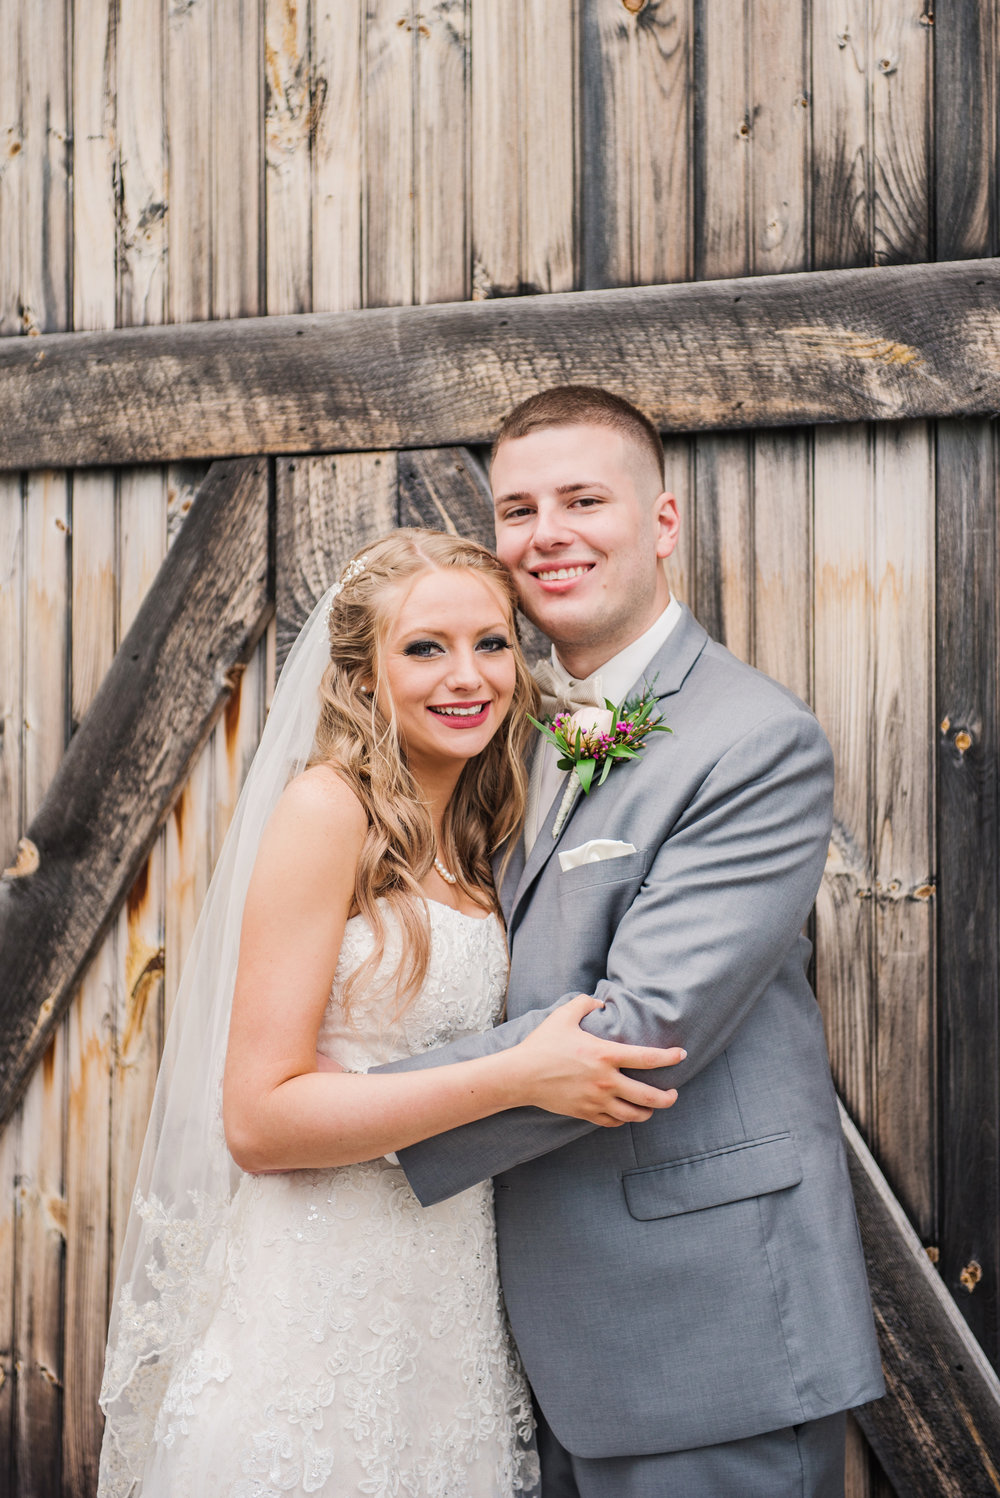 Wolf_Oak_Acres_Central_NY_Wedding_JILL_STUDIO_Rochester_NY_Photographer_DSC_8668.jpg